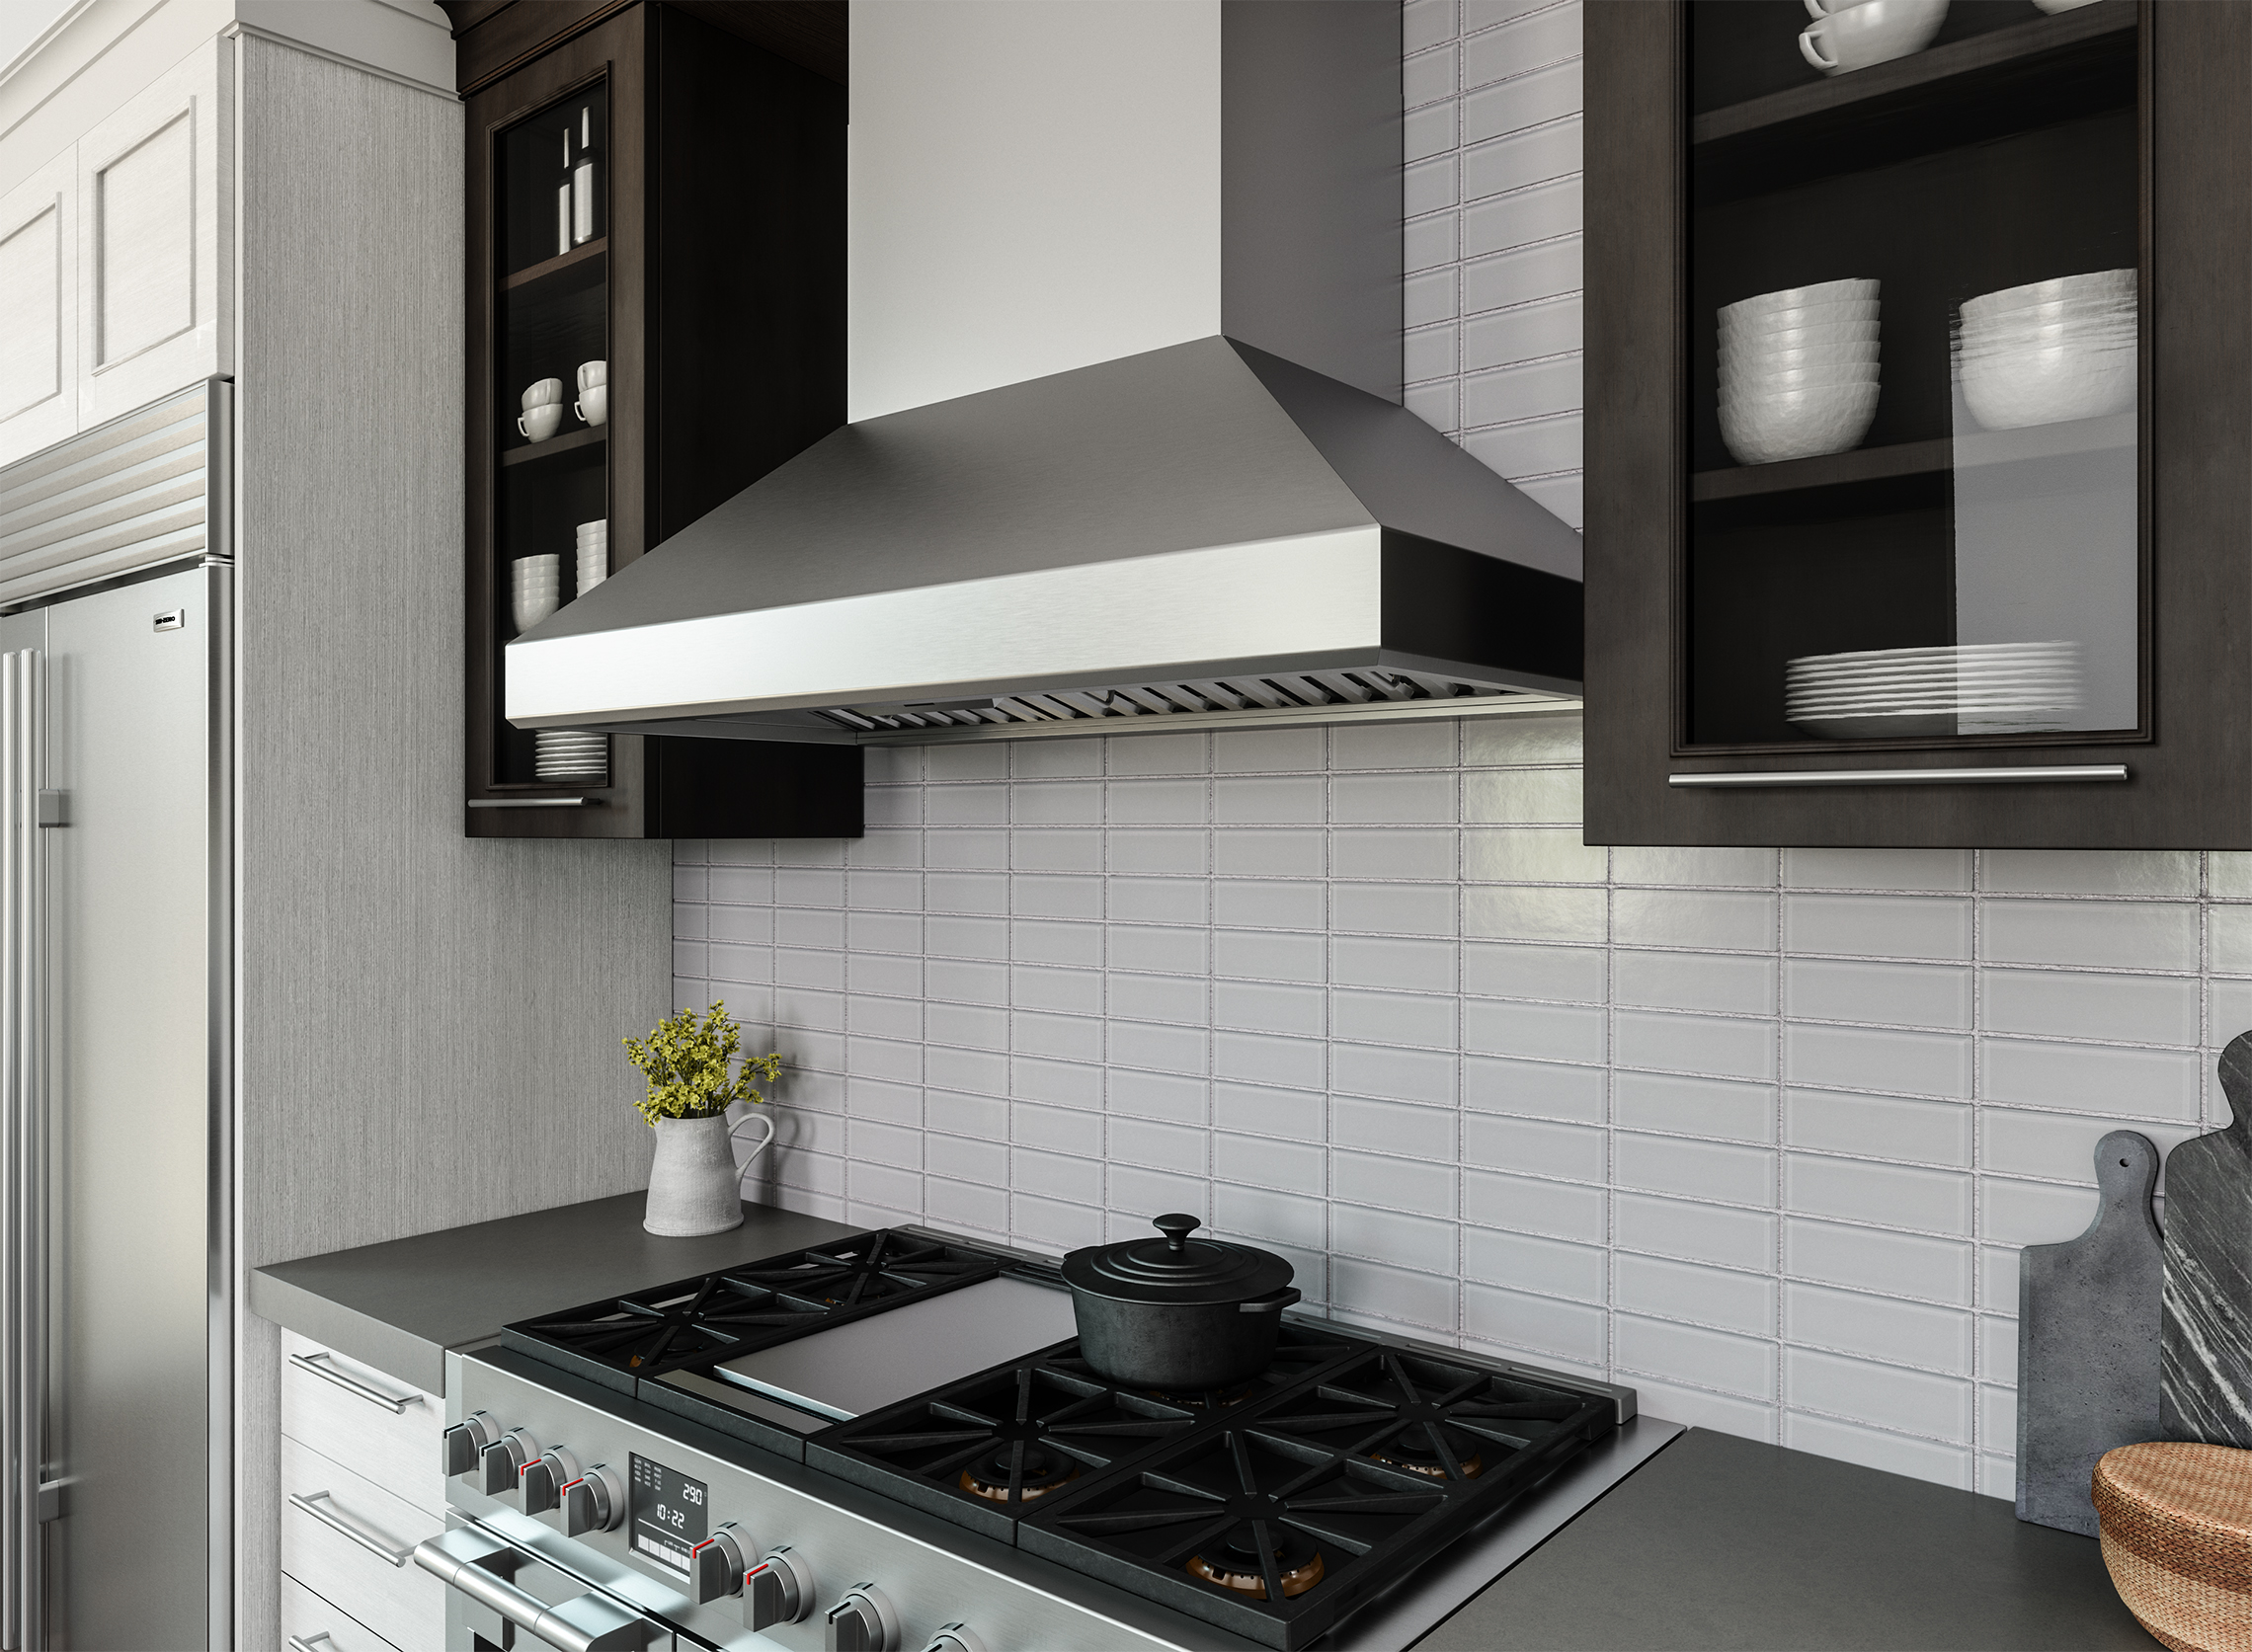 Charmant Zephyr Introduces Titan Range Hood With PowerWave™ Blower Technology